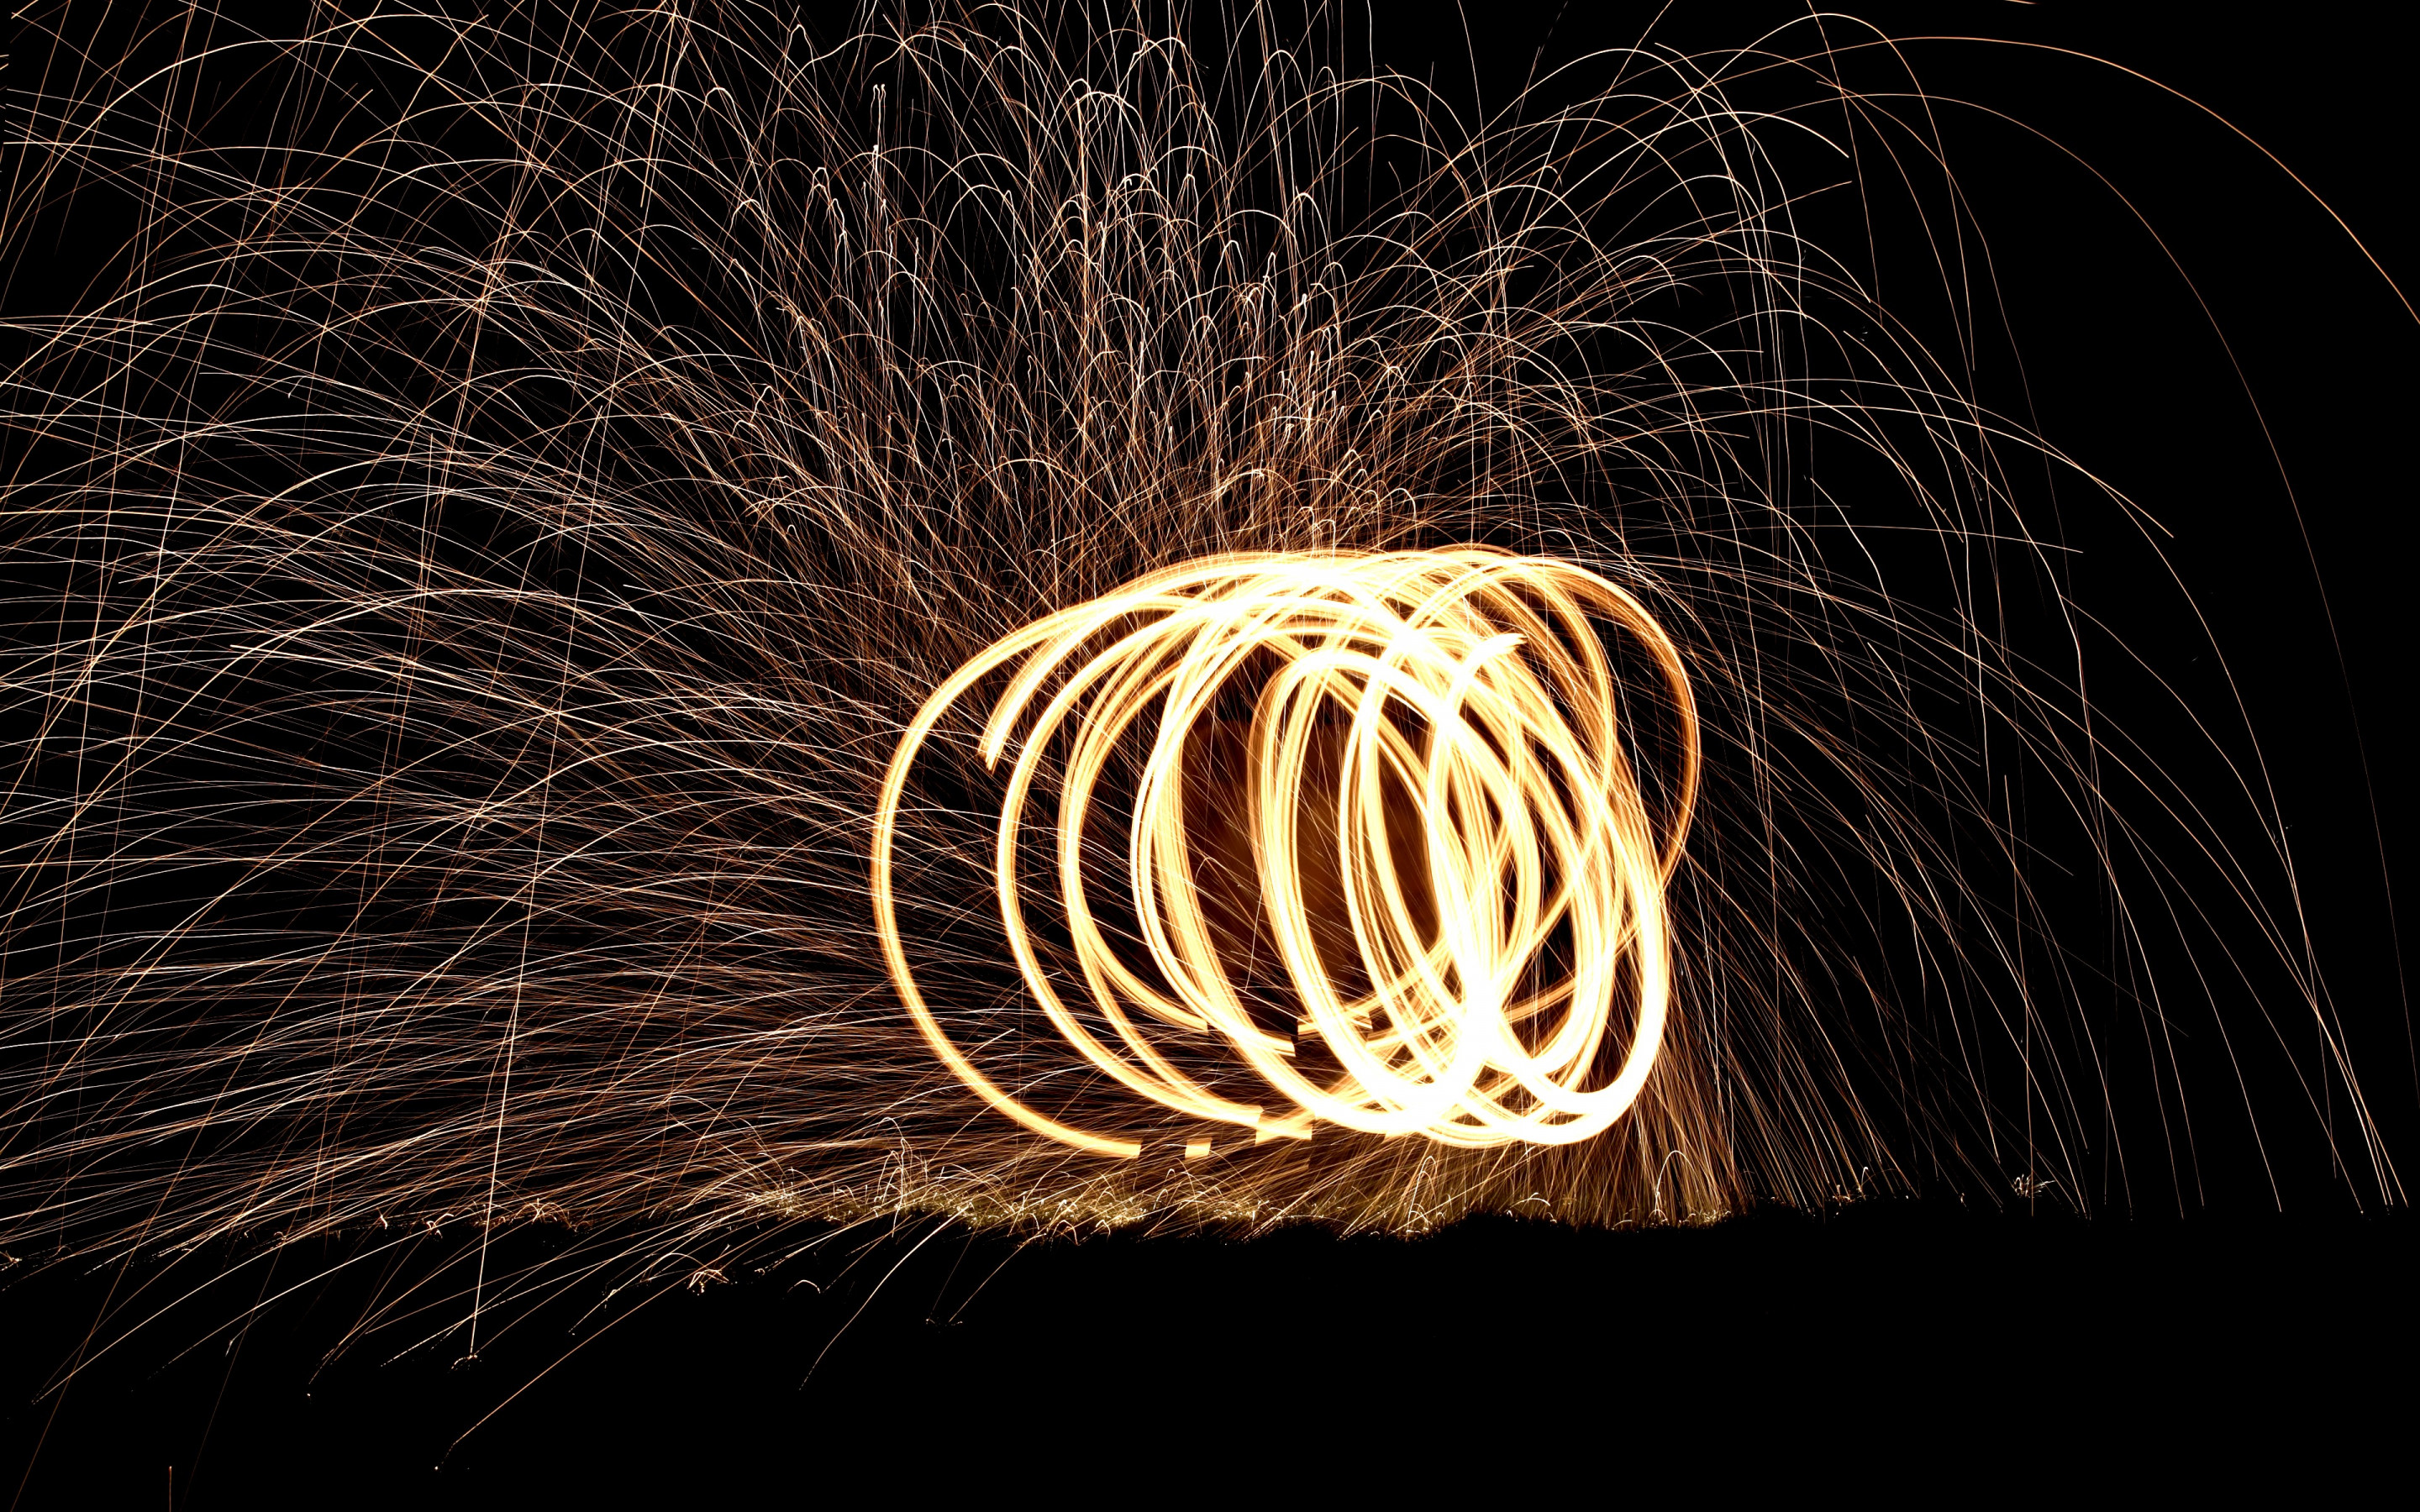 Spinning wire wool wallpaper 2880x1800